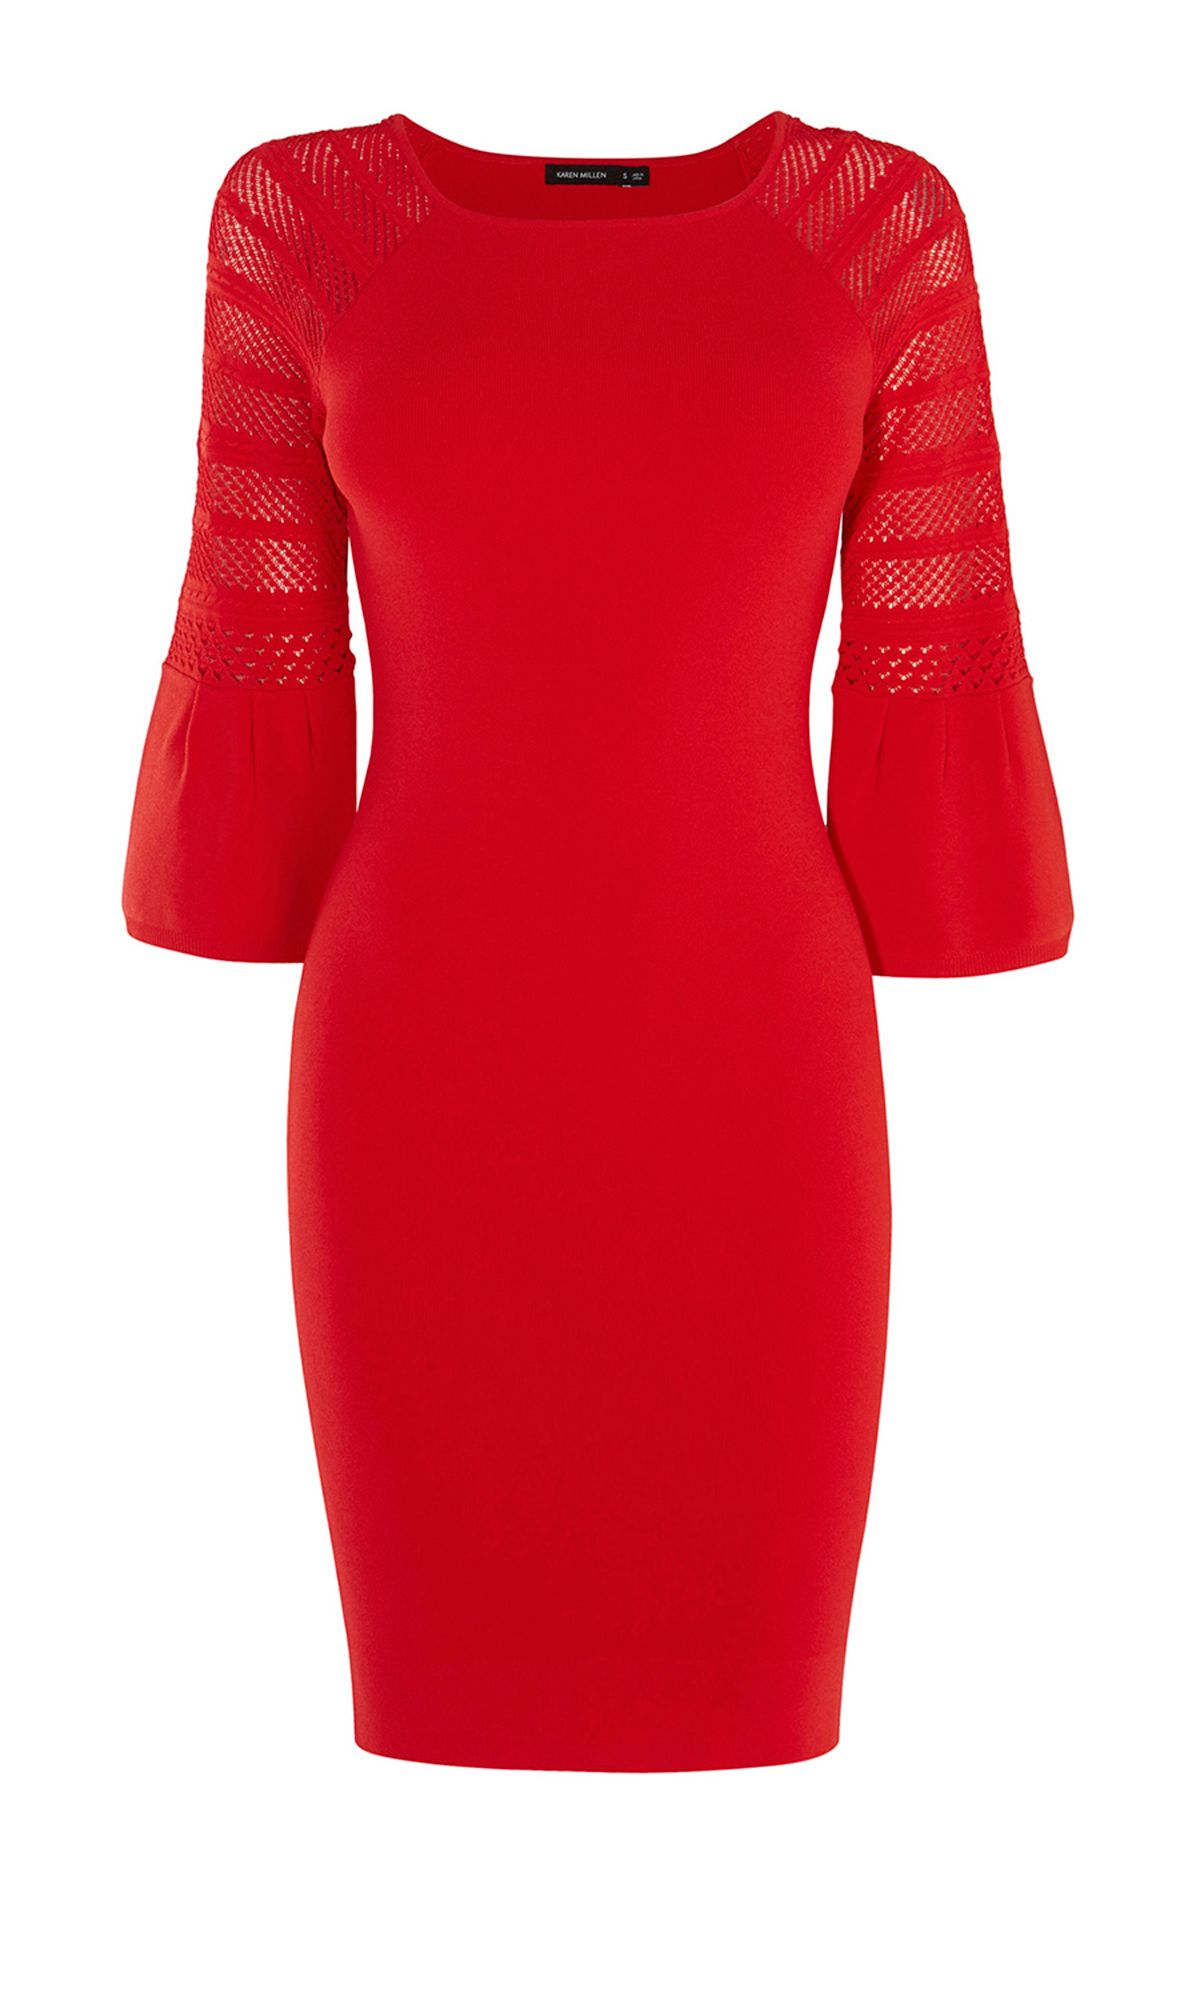 Karen Millen Fluted Sleeve Dress, Red